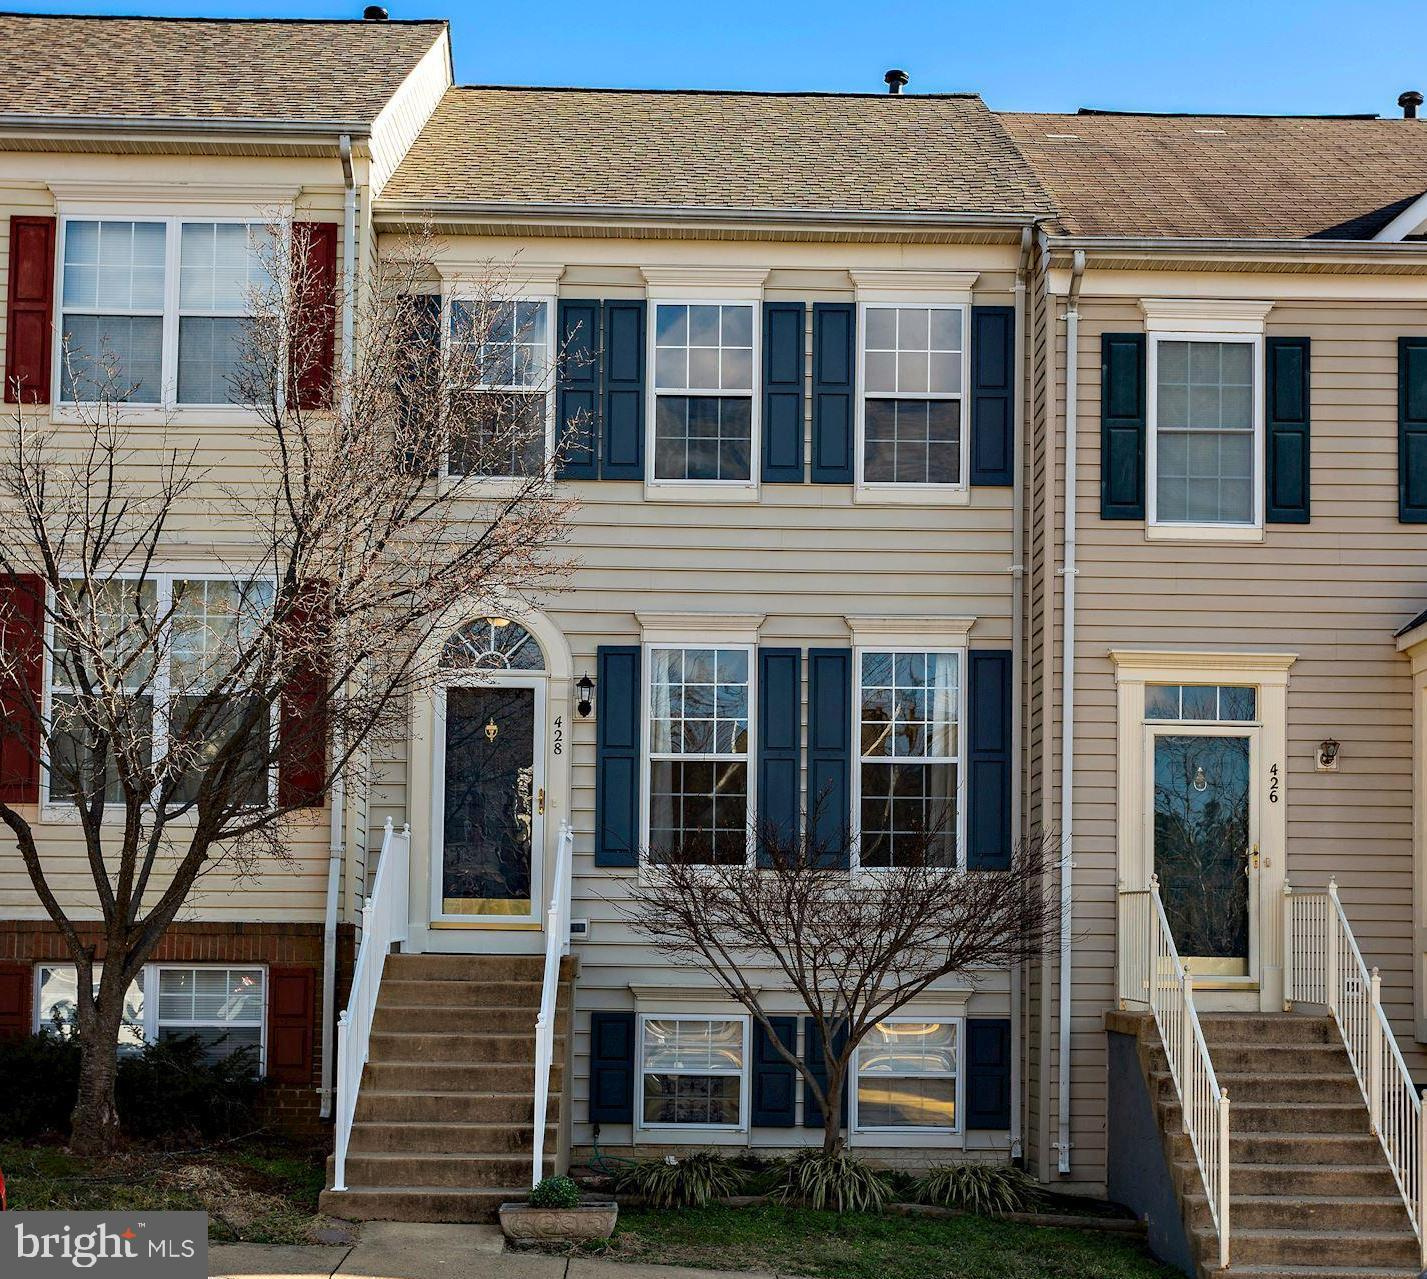 Spectacular  4 bedroom townhome located in the popular Sycamore Hill community just minutes from the Leesburg outlets, downtown and more!   This home is filled with loads of natural light while the main level showcases stylish wide plank hardwood floors, a gourmet kitchen w/ SS appliances and granite countertops.  Step off the kitchen to the expansive deck w/ staircase to lower level fenced in yard w/ private garden area.  Brand new carpet leads you upstairs to 3 bedrooms w/ updated bathrooms.  The walkout basement features the 4th bedroom, additional bathroom and versatile space, perfect for relaxation or exercise, whichever suits you!  New water heater, dishwasher, newer deck, fresh paint, new carpet throughout & more!  Hurry & see!  A+ Home & Location!